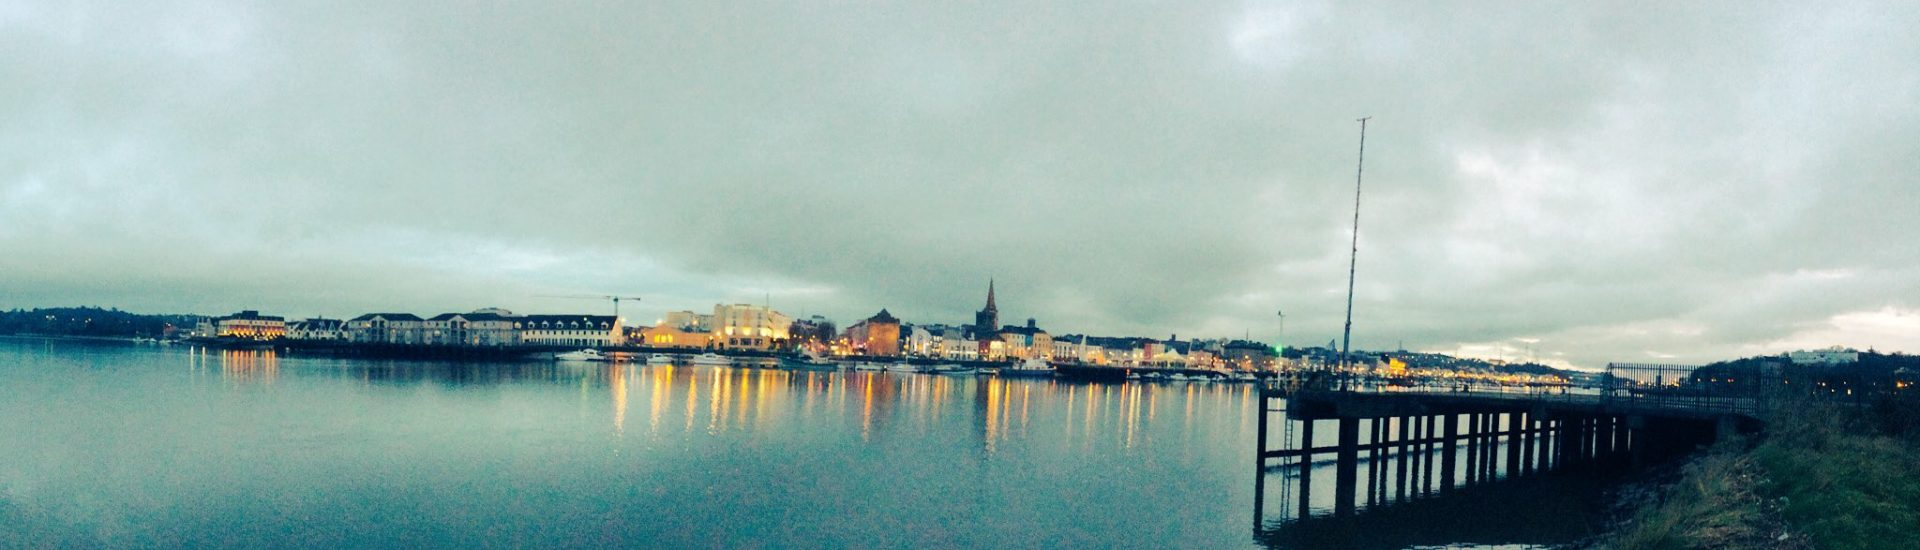 Waterford City from across the River Suir.